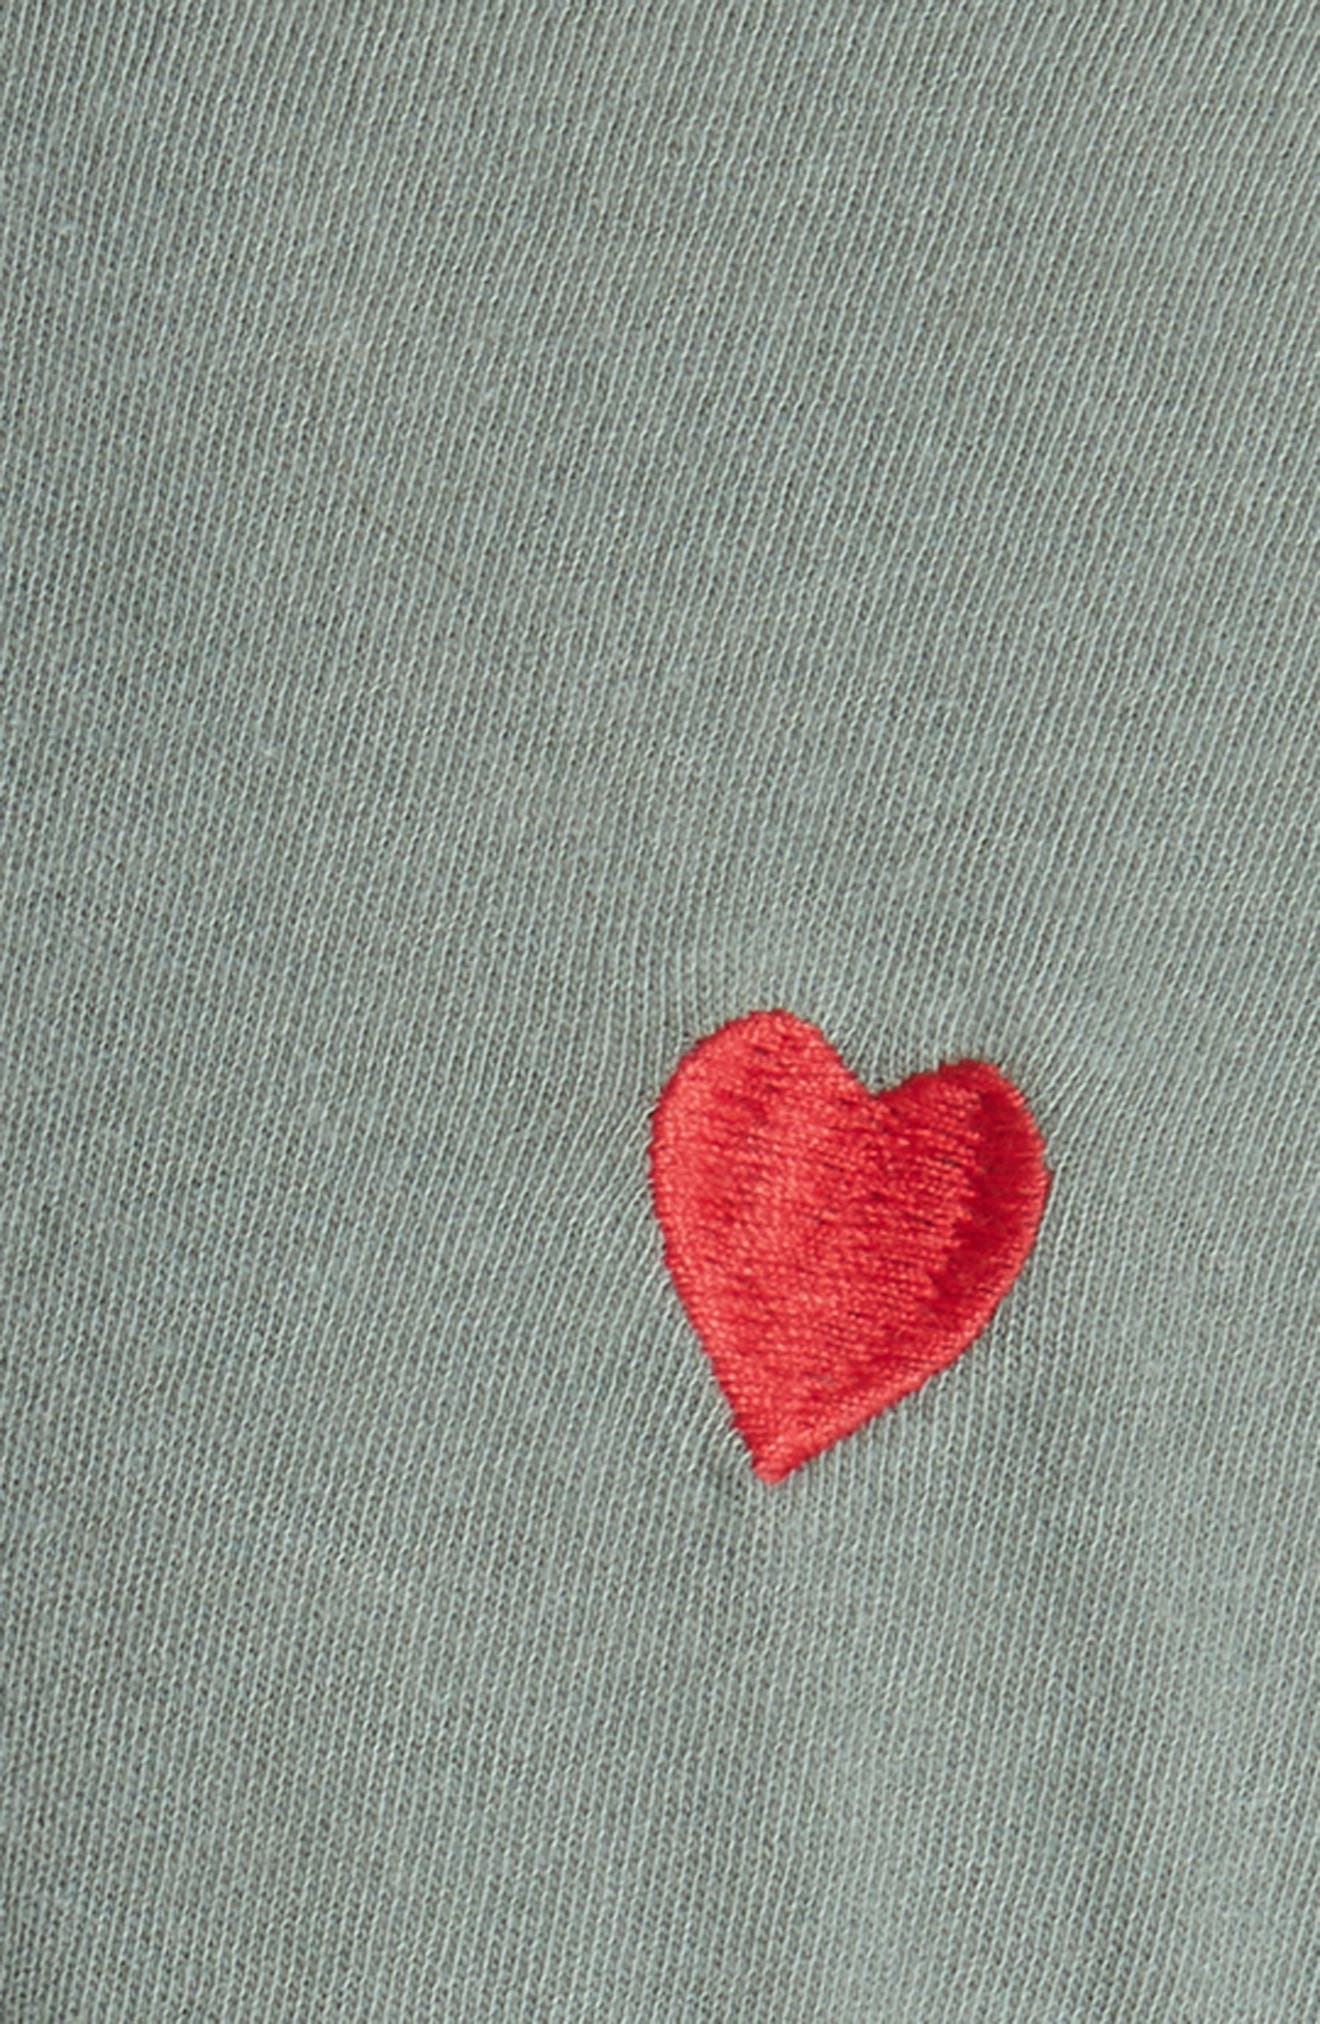 The Embroidered Boxy Crew Tee,                             Alternate thumbnail 5, color,                             Moss Army/ Red Hearts